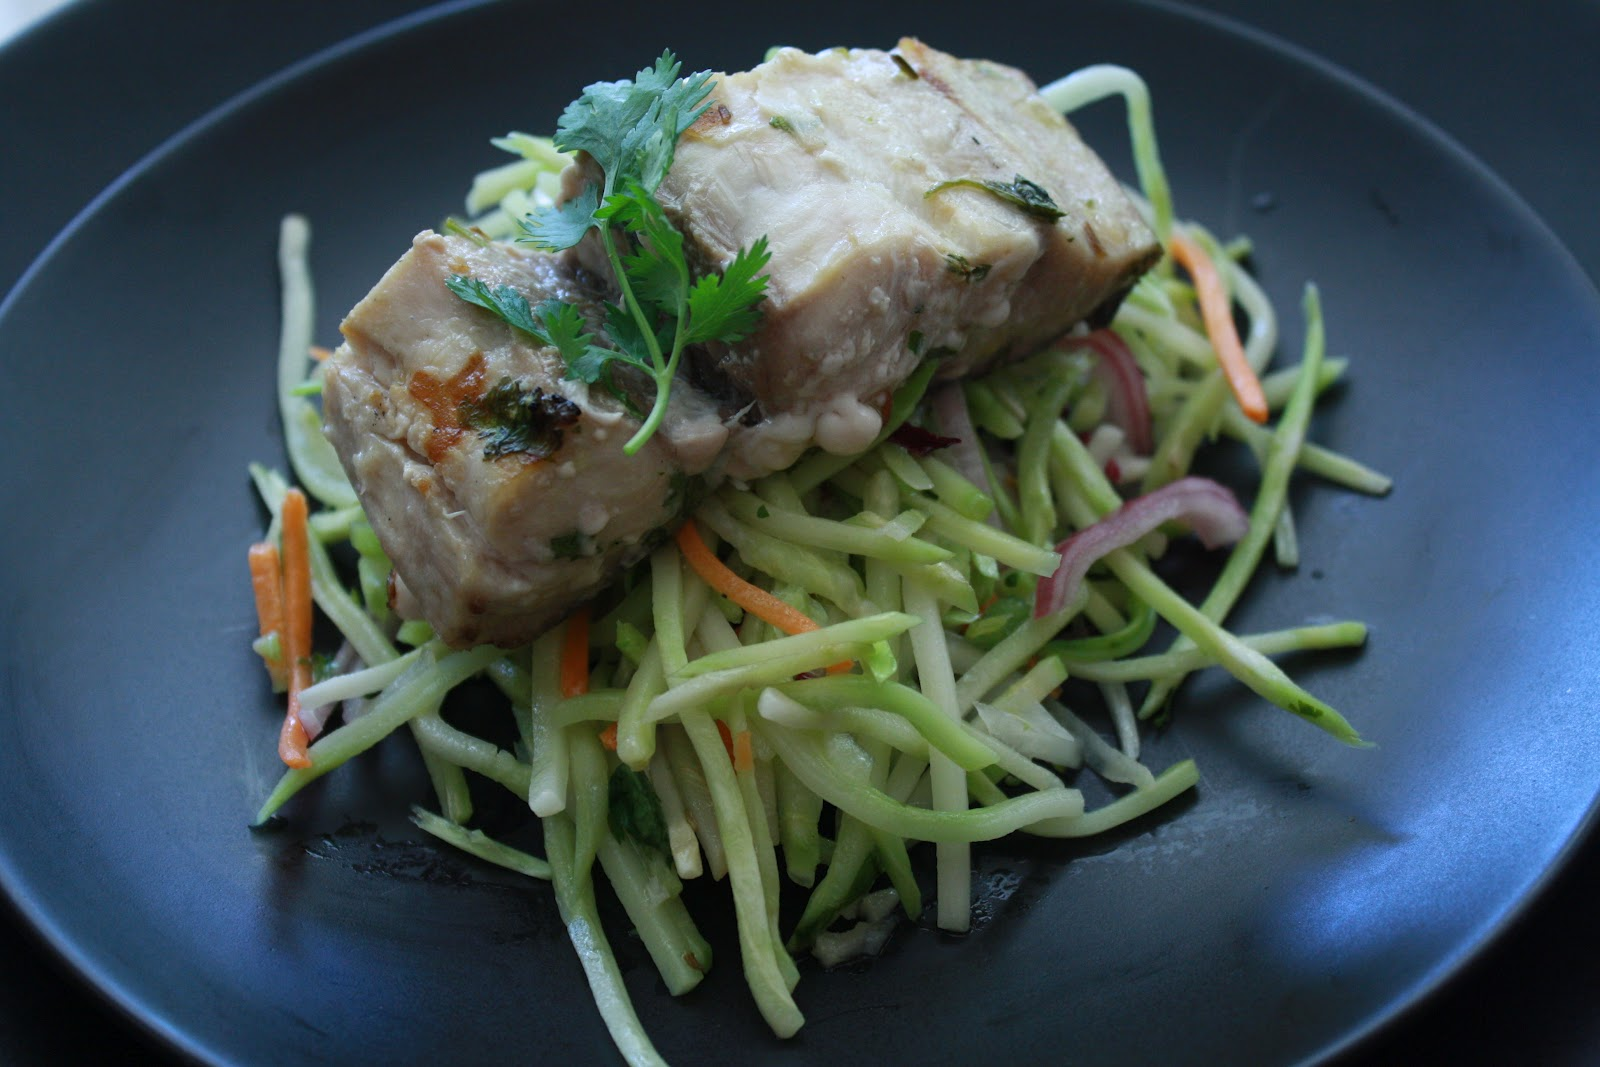 Sip And Chew: Grilled Fish on Cilantro-Chili Slaw